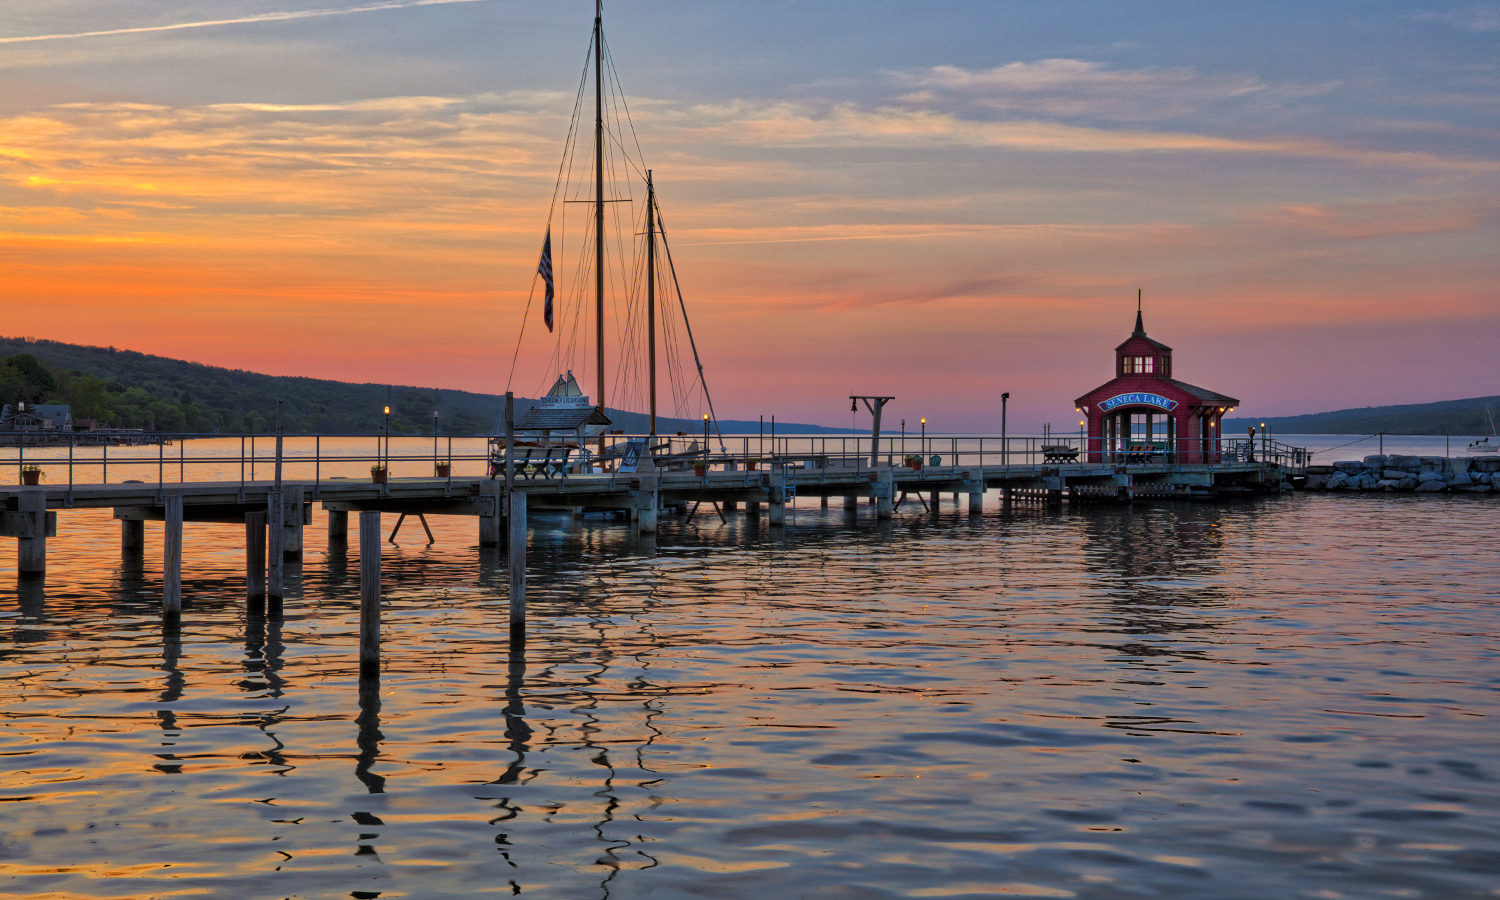 The sun sets over the Seneca Lake boathouse in Watkins Glen, N.Y.